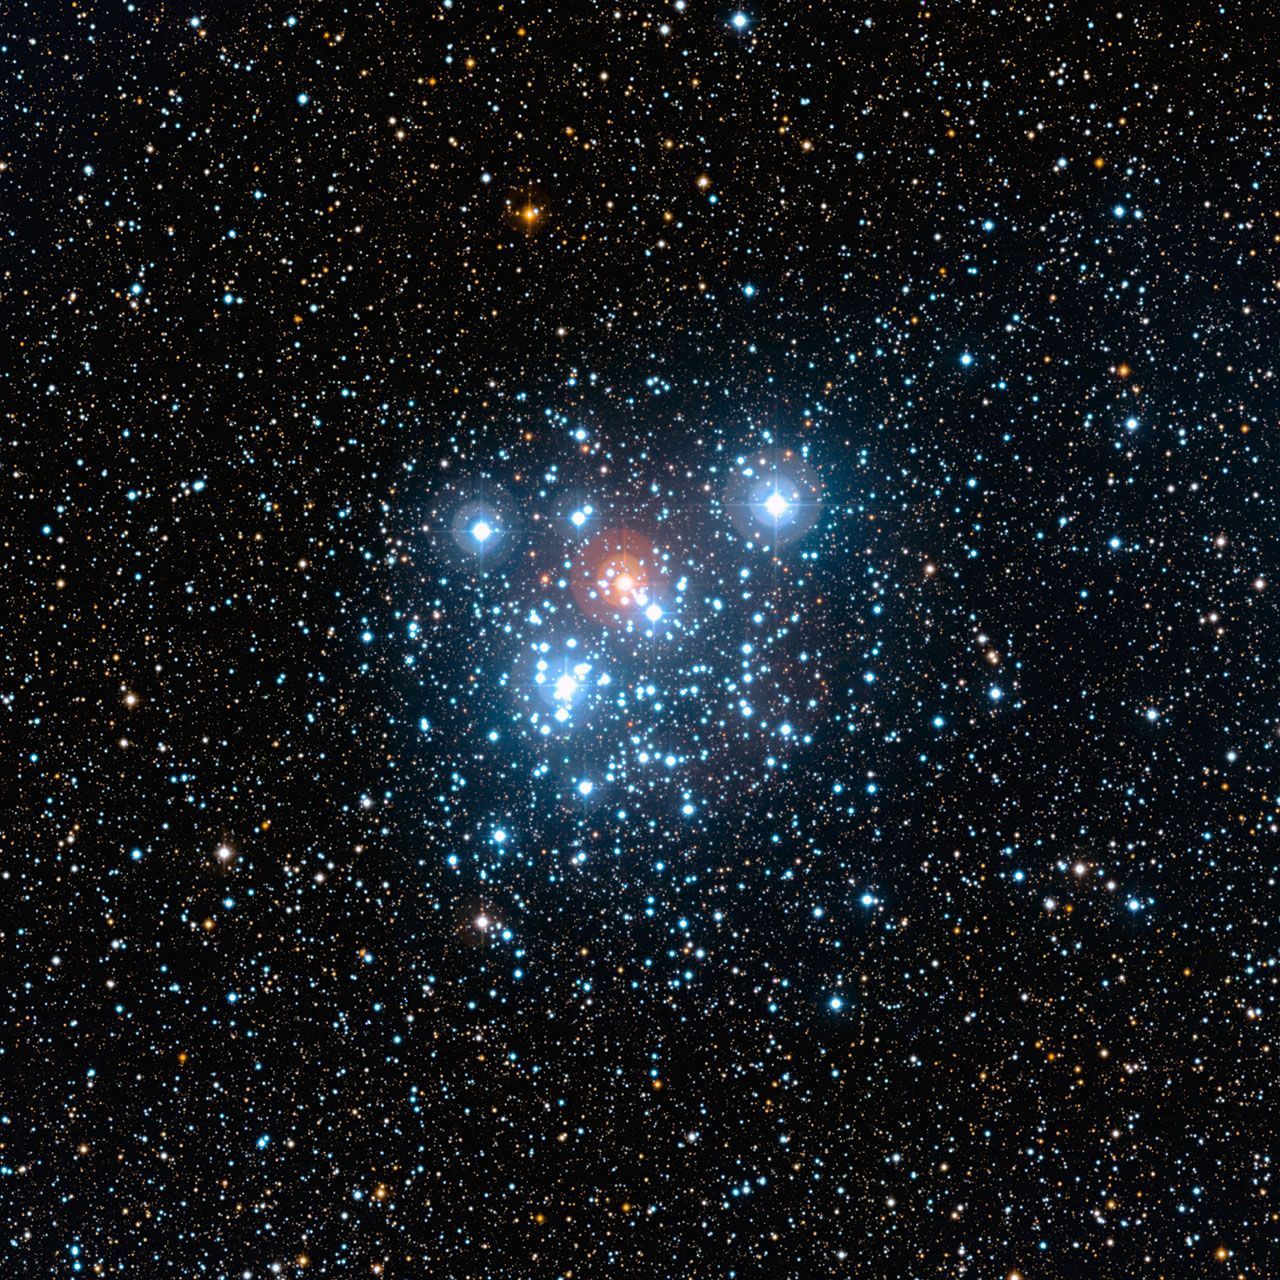 Wide Field Image of the Jewel Box. This image of the well-known NGC 4755 cluster or Jewel Box was taken with the Wide Field Imager (WFI) on the MPG/ESO 2.2-metre telescope at ESO's La Silla Observatory. It highlights the cluster and its rich surroundings in all their multicoloured glory. The field of view is 20 arcminutes across. The picture is based on images obtained through B, V and I filters.